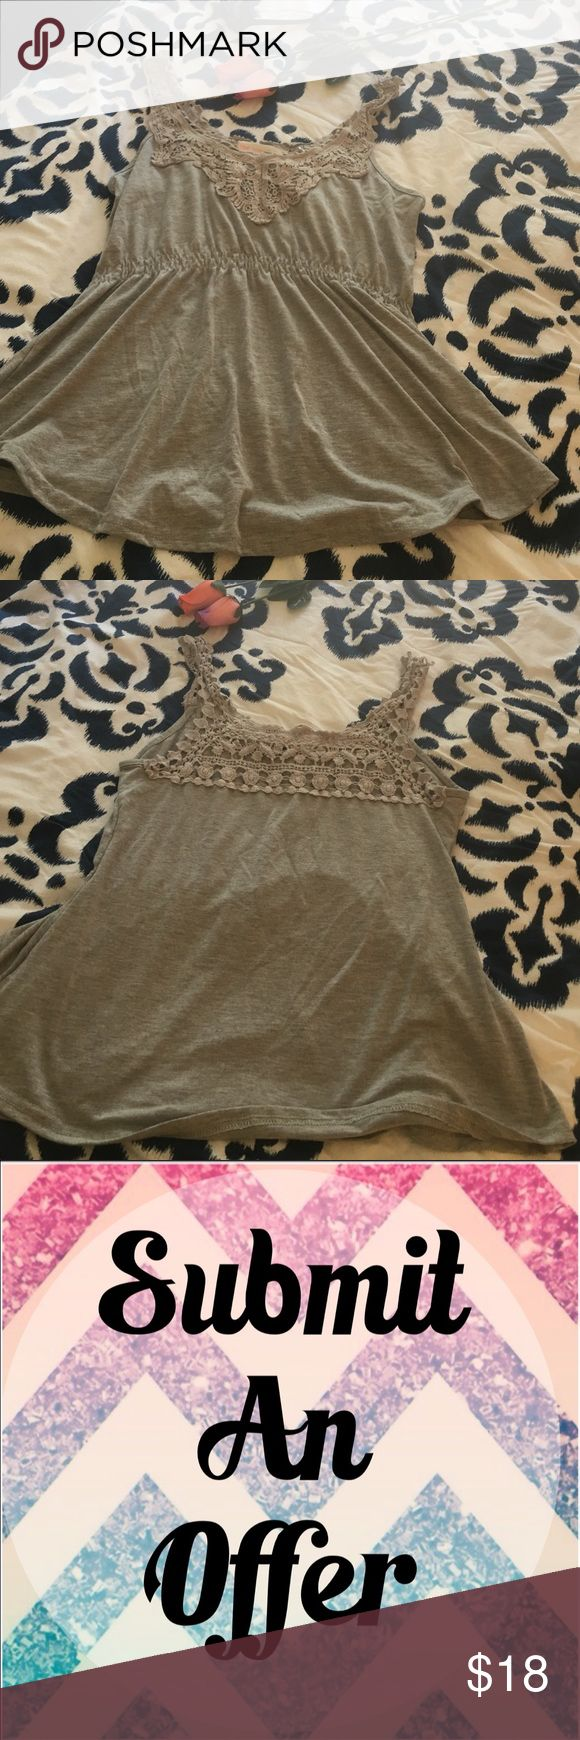 💕 Sale 💕 $10 Cute laser cut tank top • good condition • Love Tree Happens Tops Tank Tops